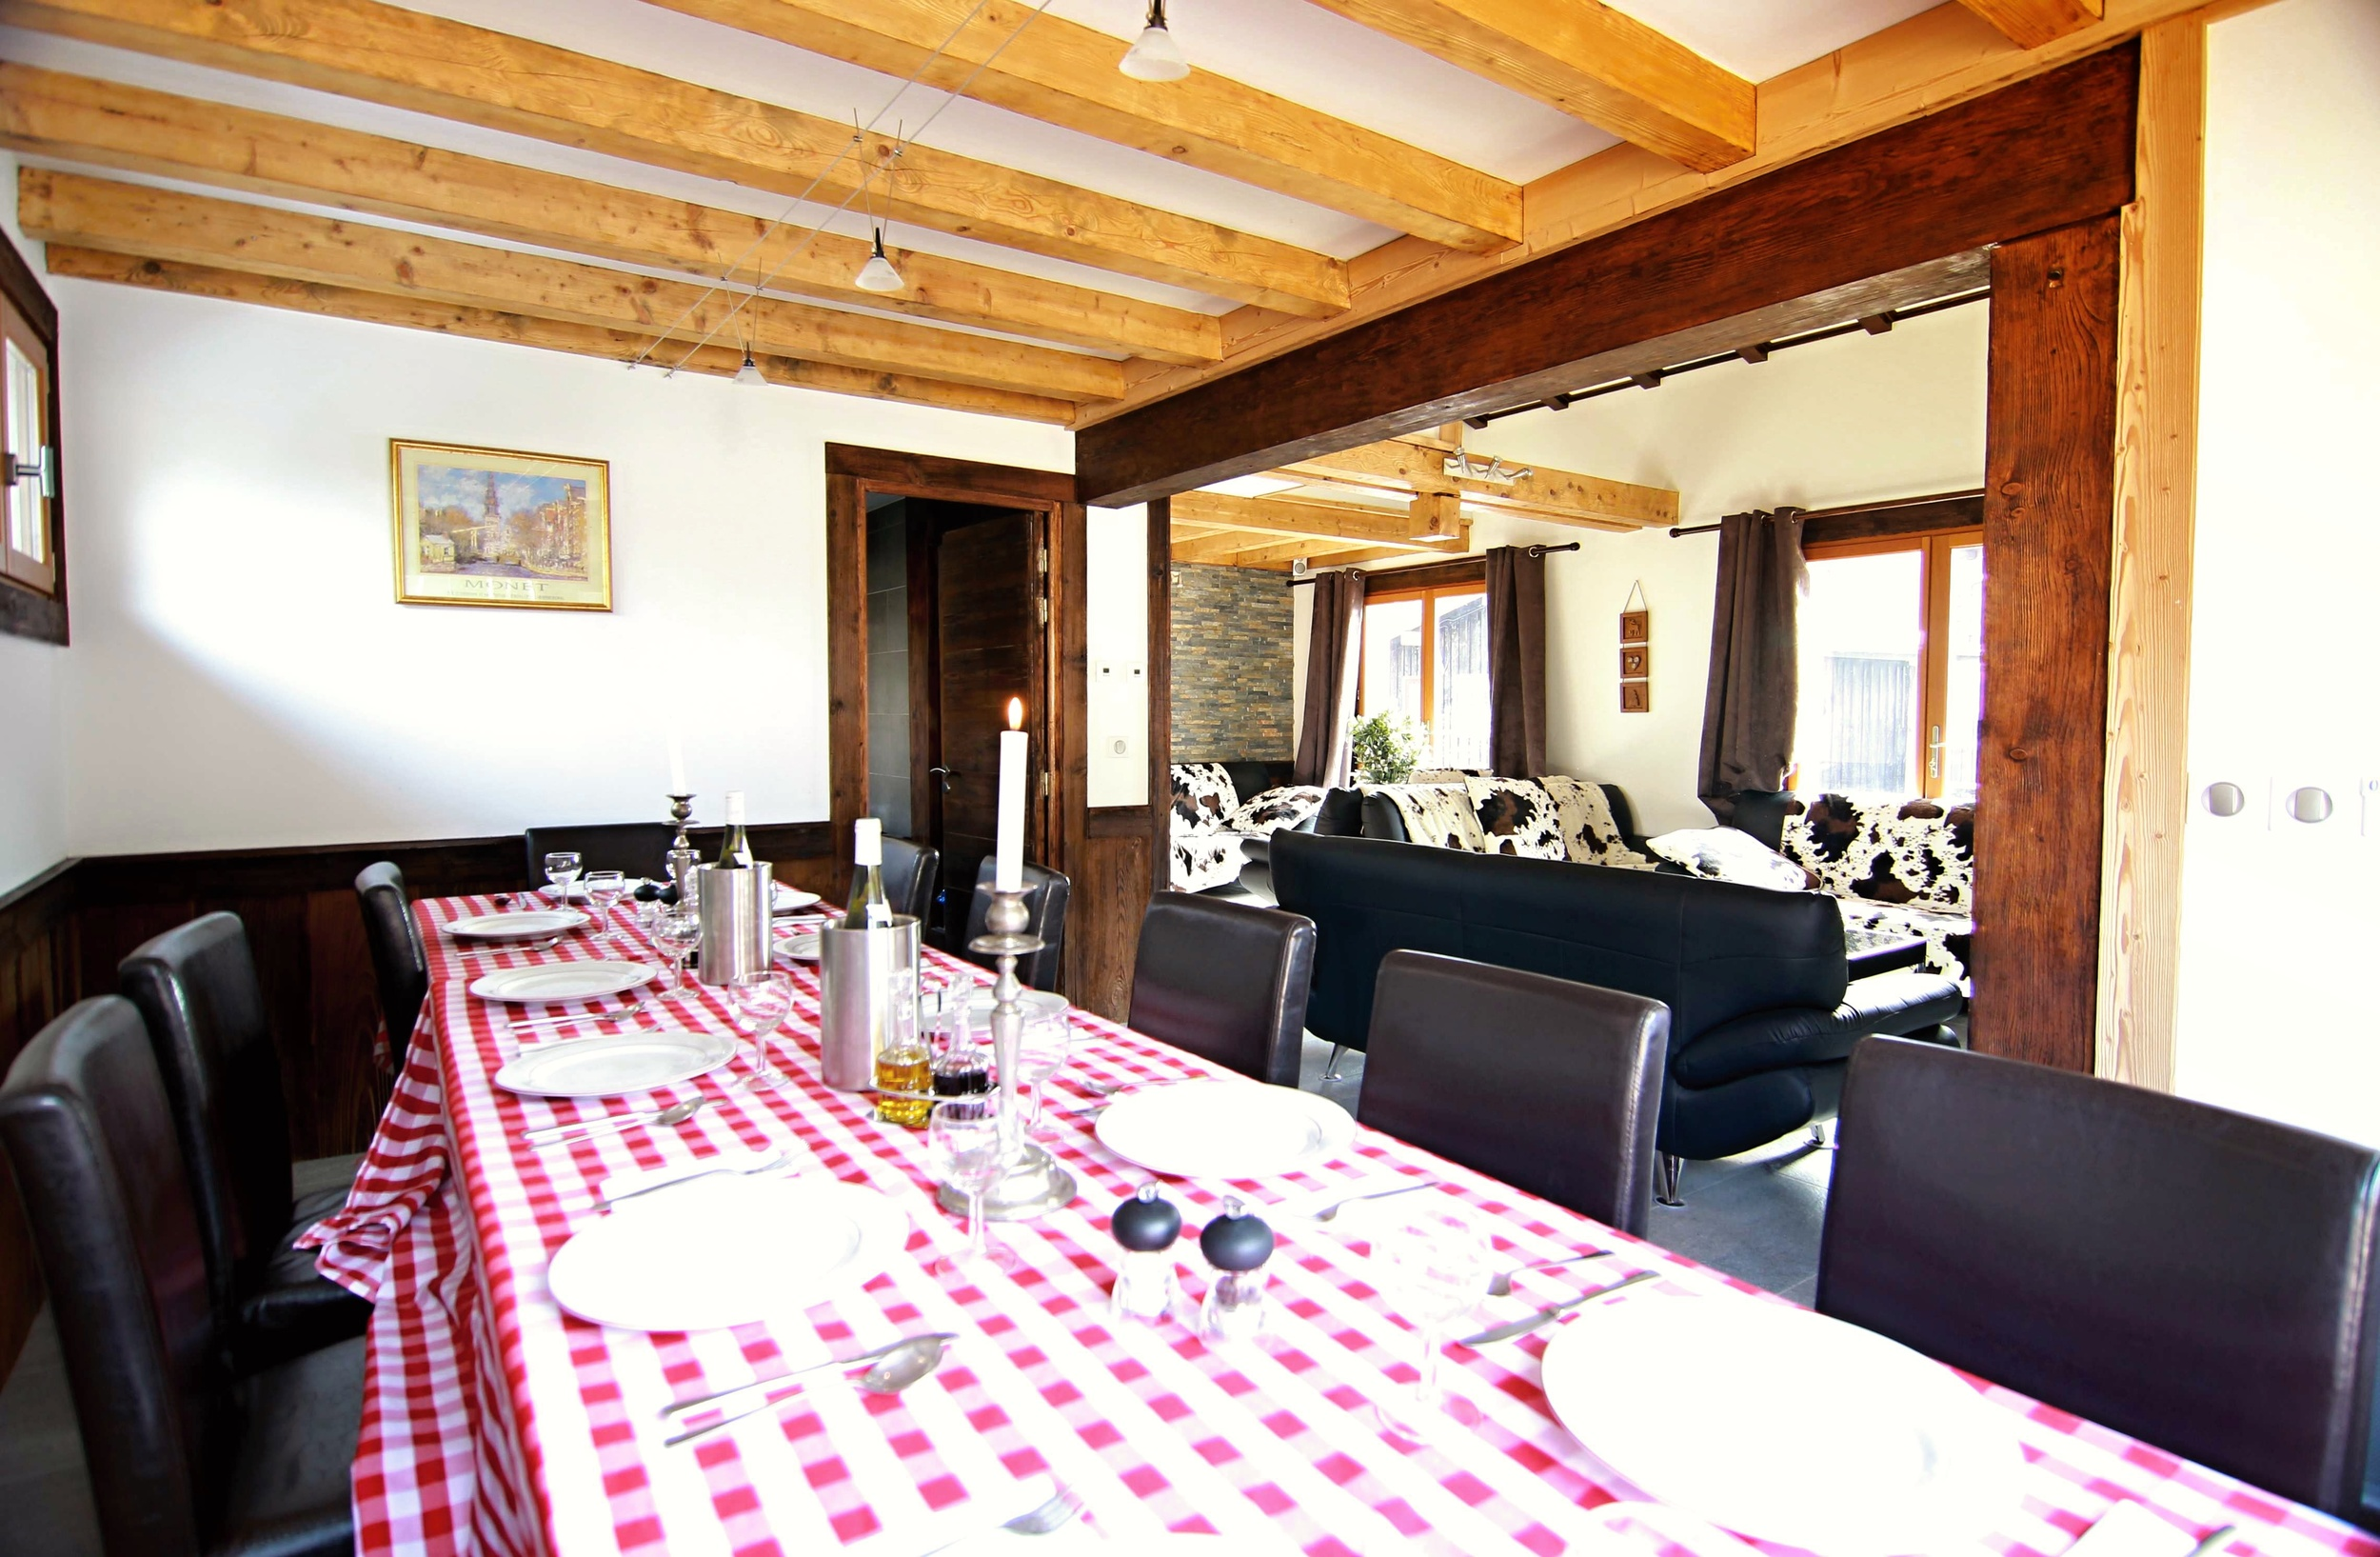 SNOWSPA CHALETS CHAMONIX- Ski Chalet Dining room Lounge with.jpg